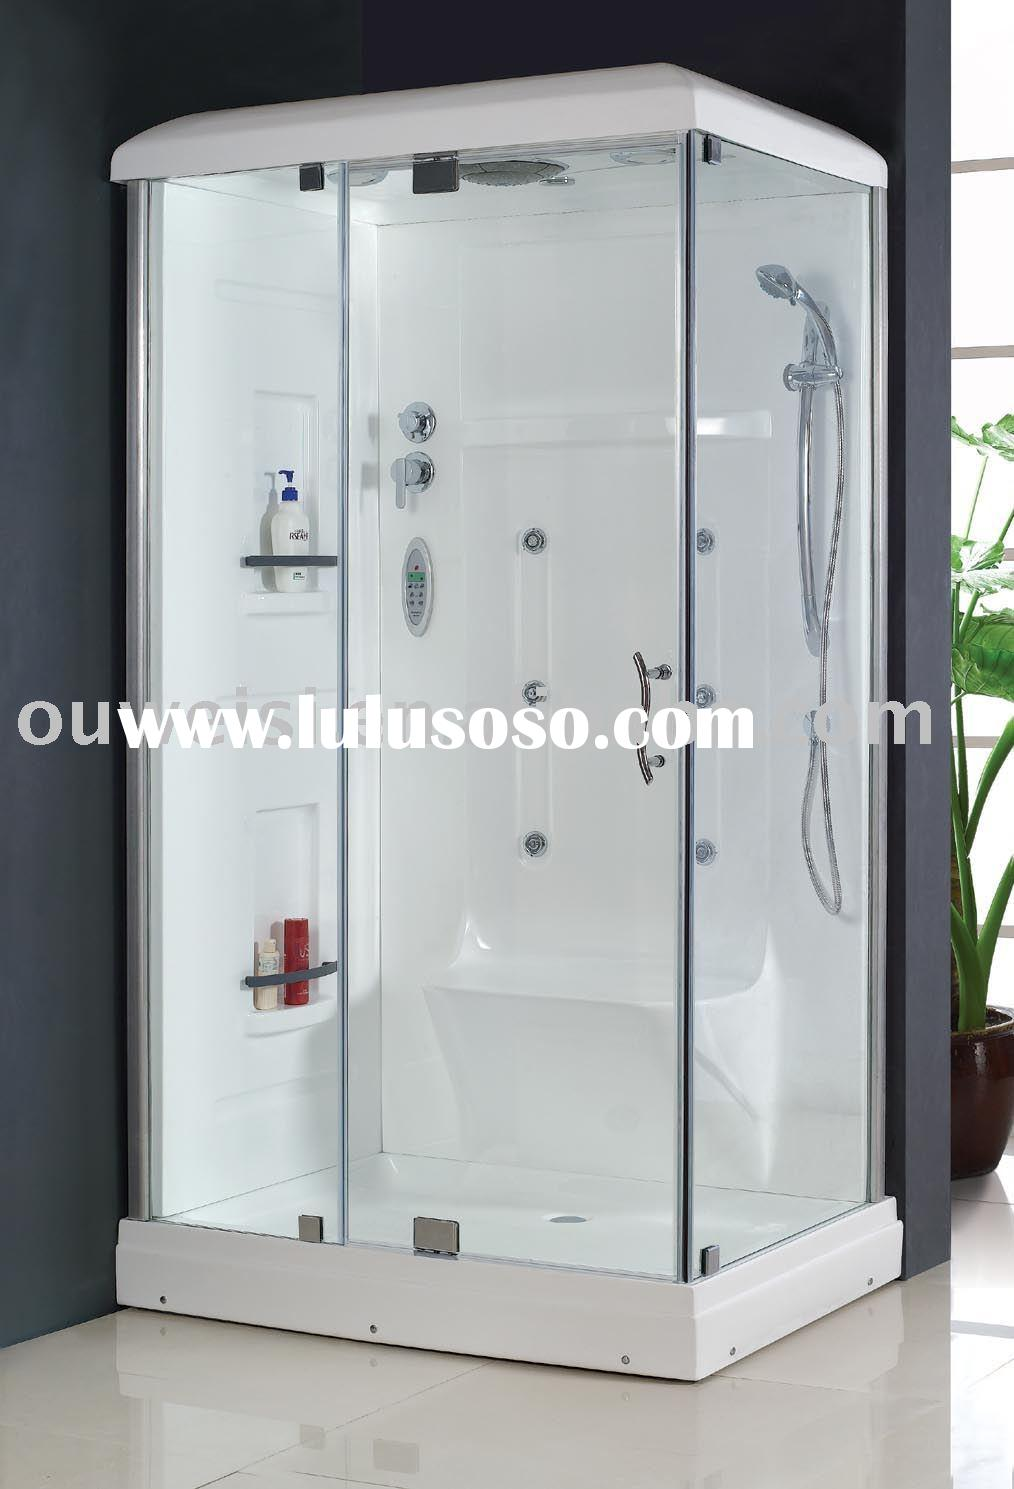 Steam room/steam house/steam shower room Y831